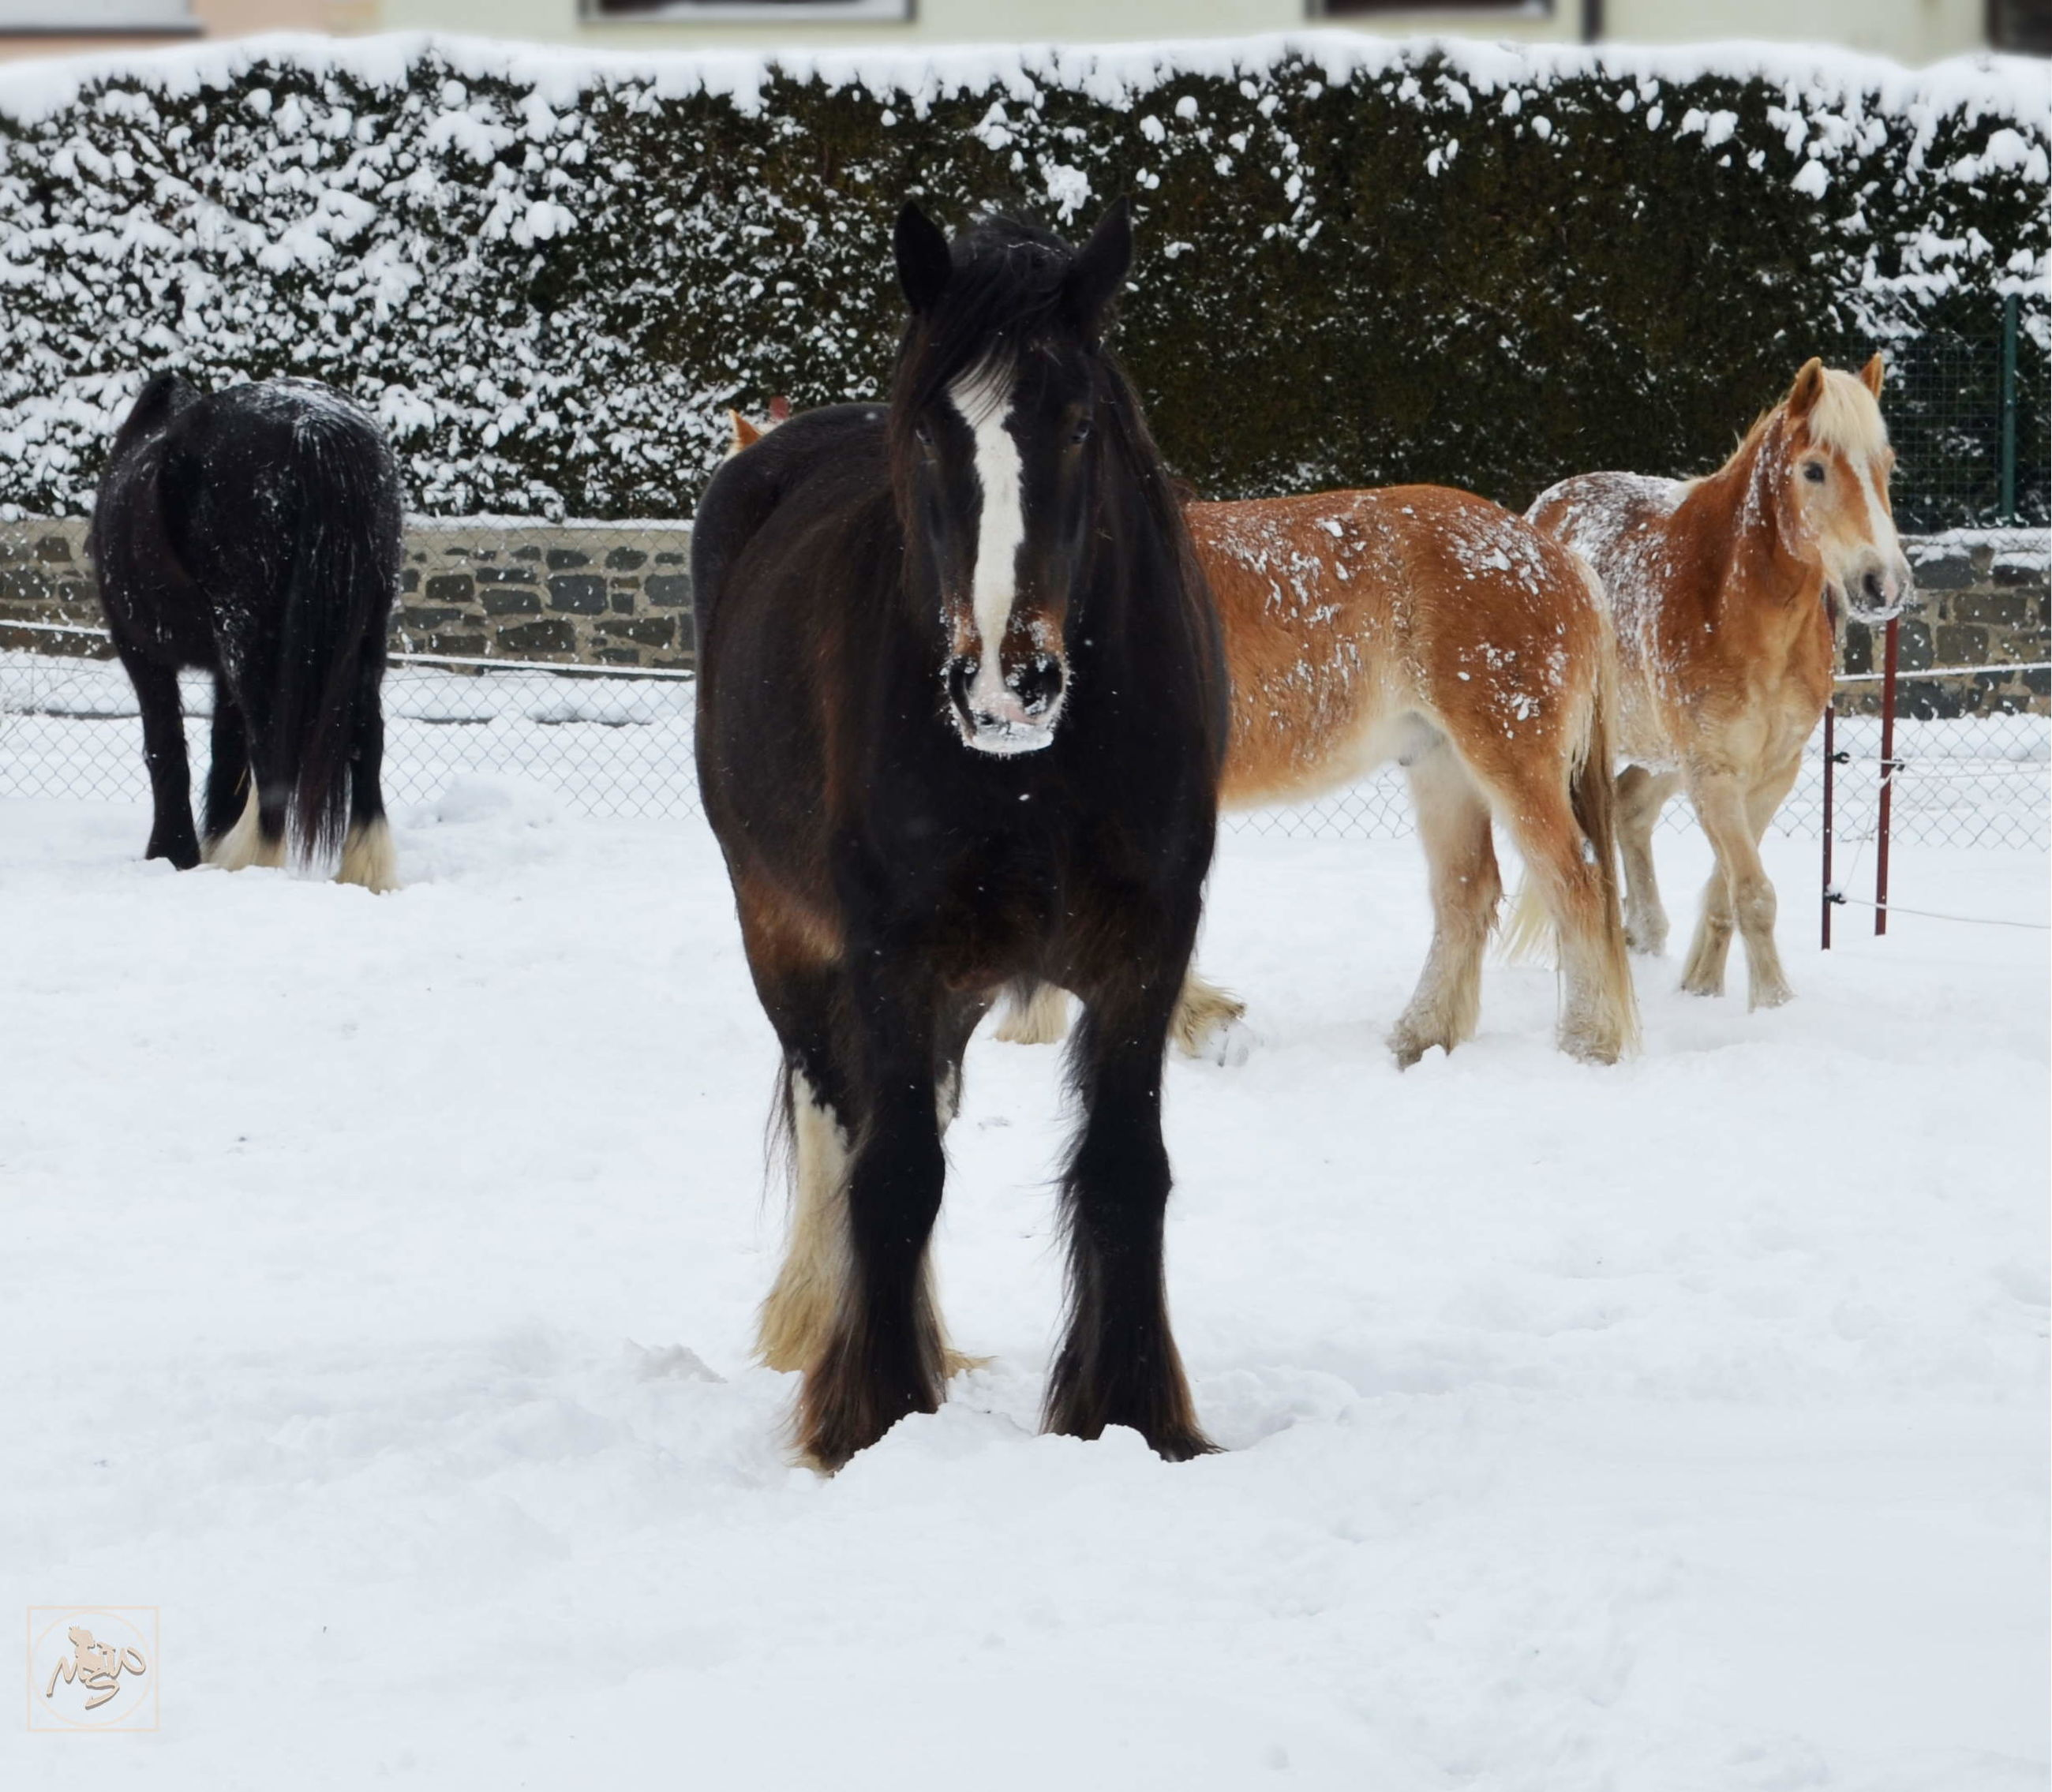 snow, winter, cold temperature, mammal, animal themes, animal, domestic animals, group of animals, domestic, pets, livestock, vertebrate, field, white color, land, covering, horse, nature, animal wildlife, no people, outdoors, herbivorous, snowing, extreme weather, snowcapped mountain